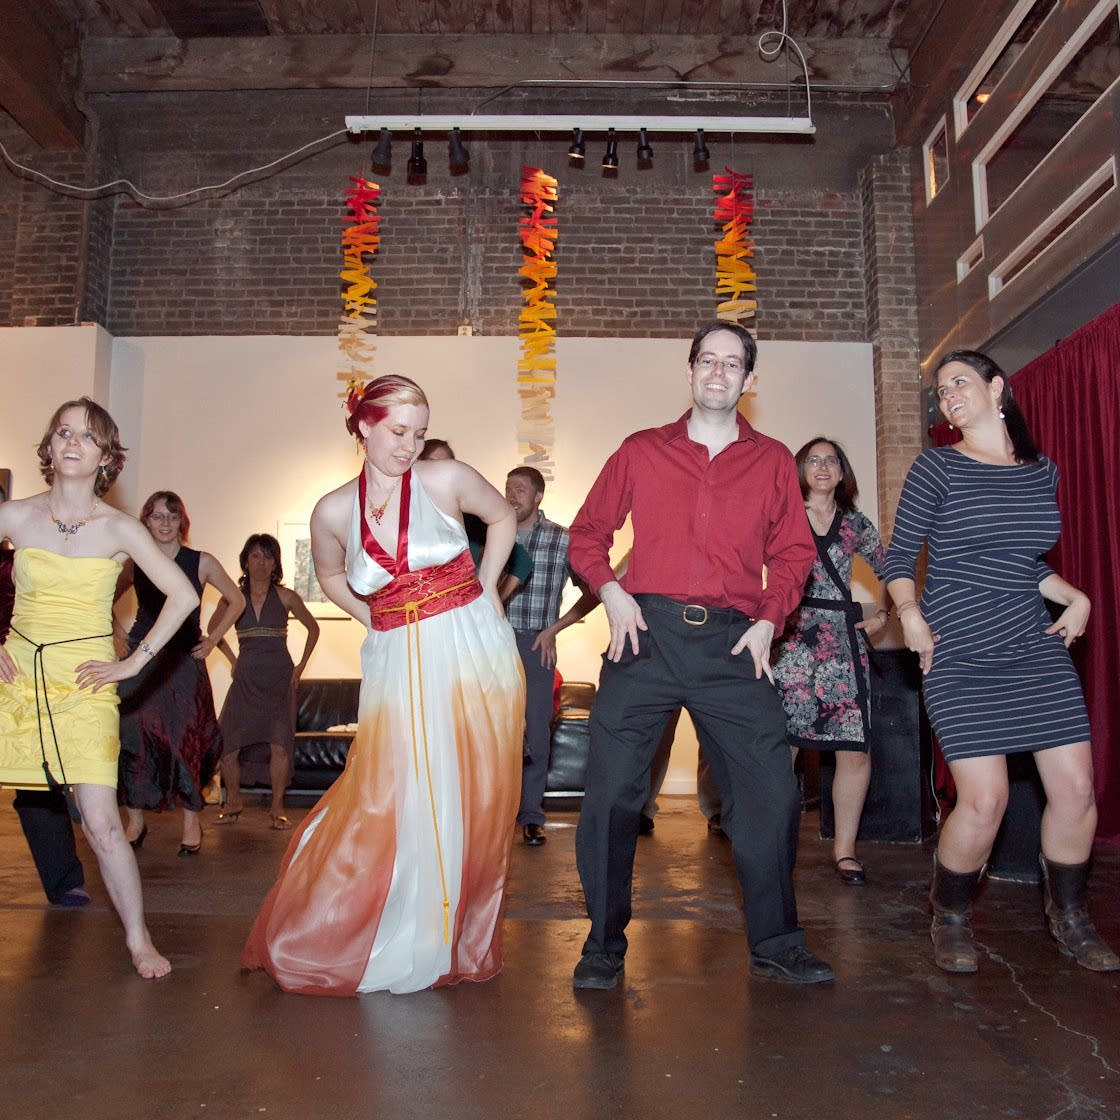 Dancing the Macarena at a Seattle wedding in 2012